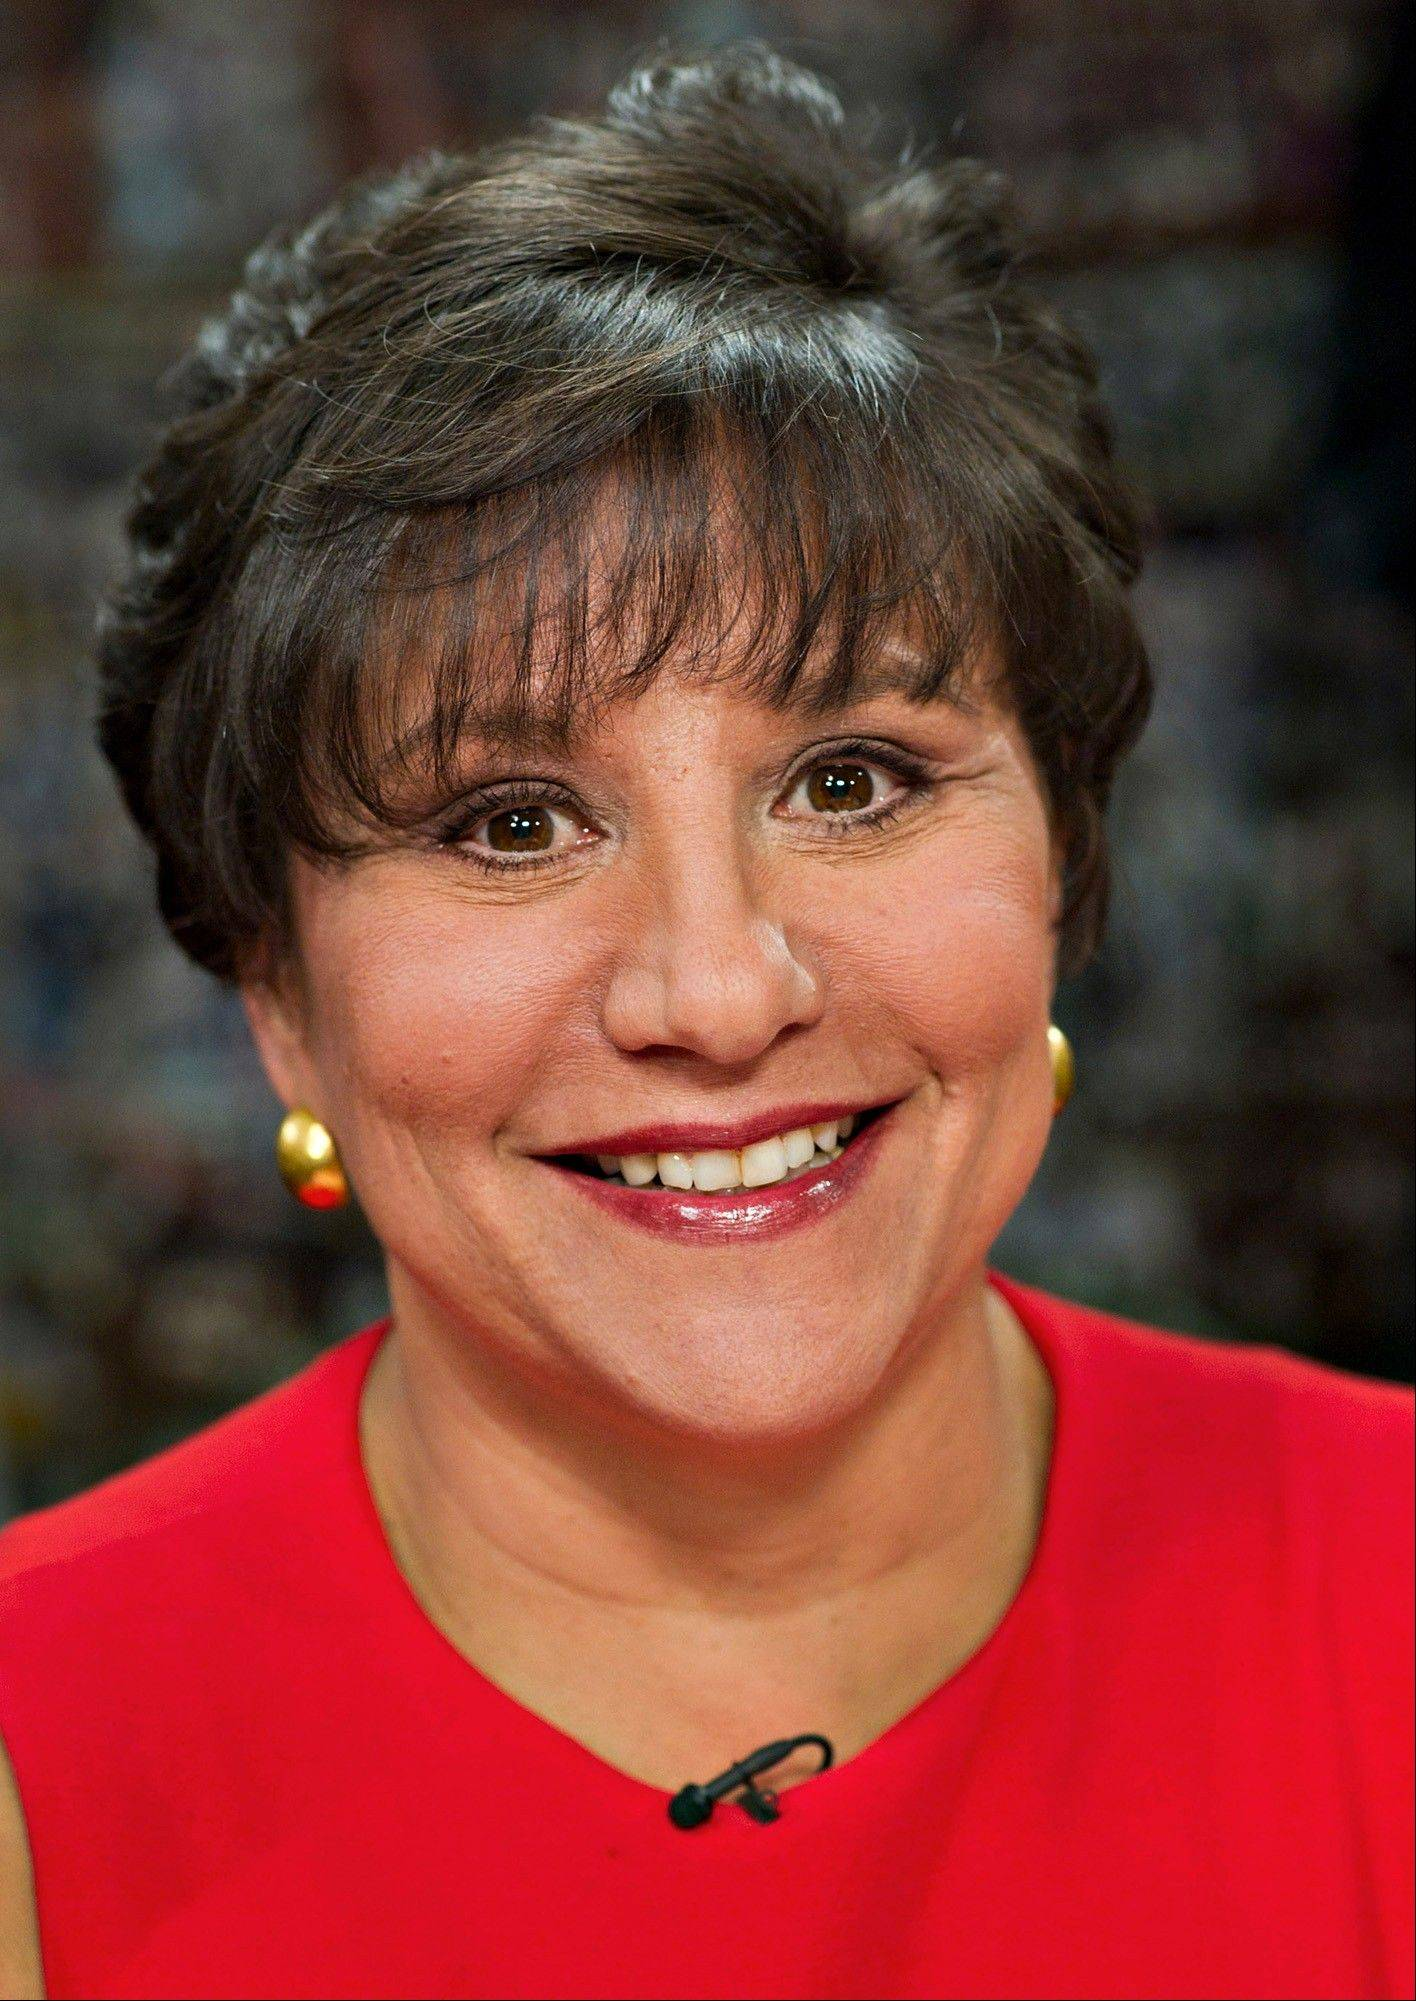 Chicago billionaire Penny Pritzker, whose fundraising prowess fueled President Barack Obama's ascent, will confront Republicans' questions about a bank she led and offshore trusts that benefit her during a hearing on her nomination to be U.S. Commerce secretary.